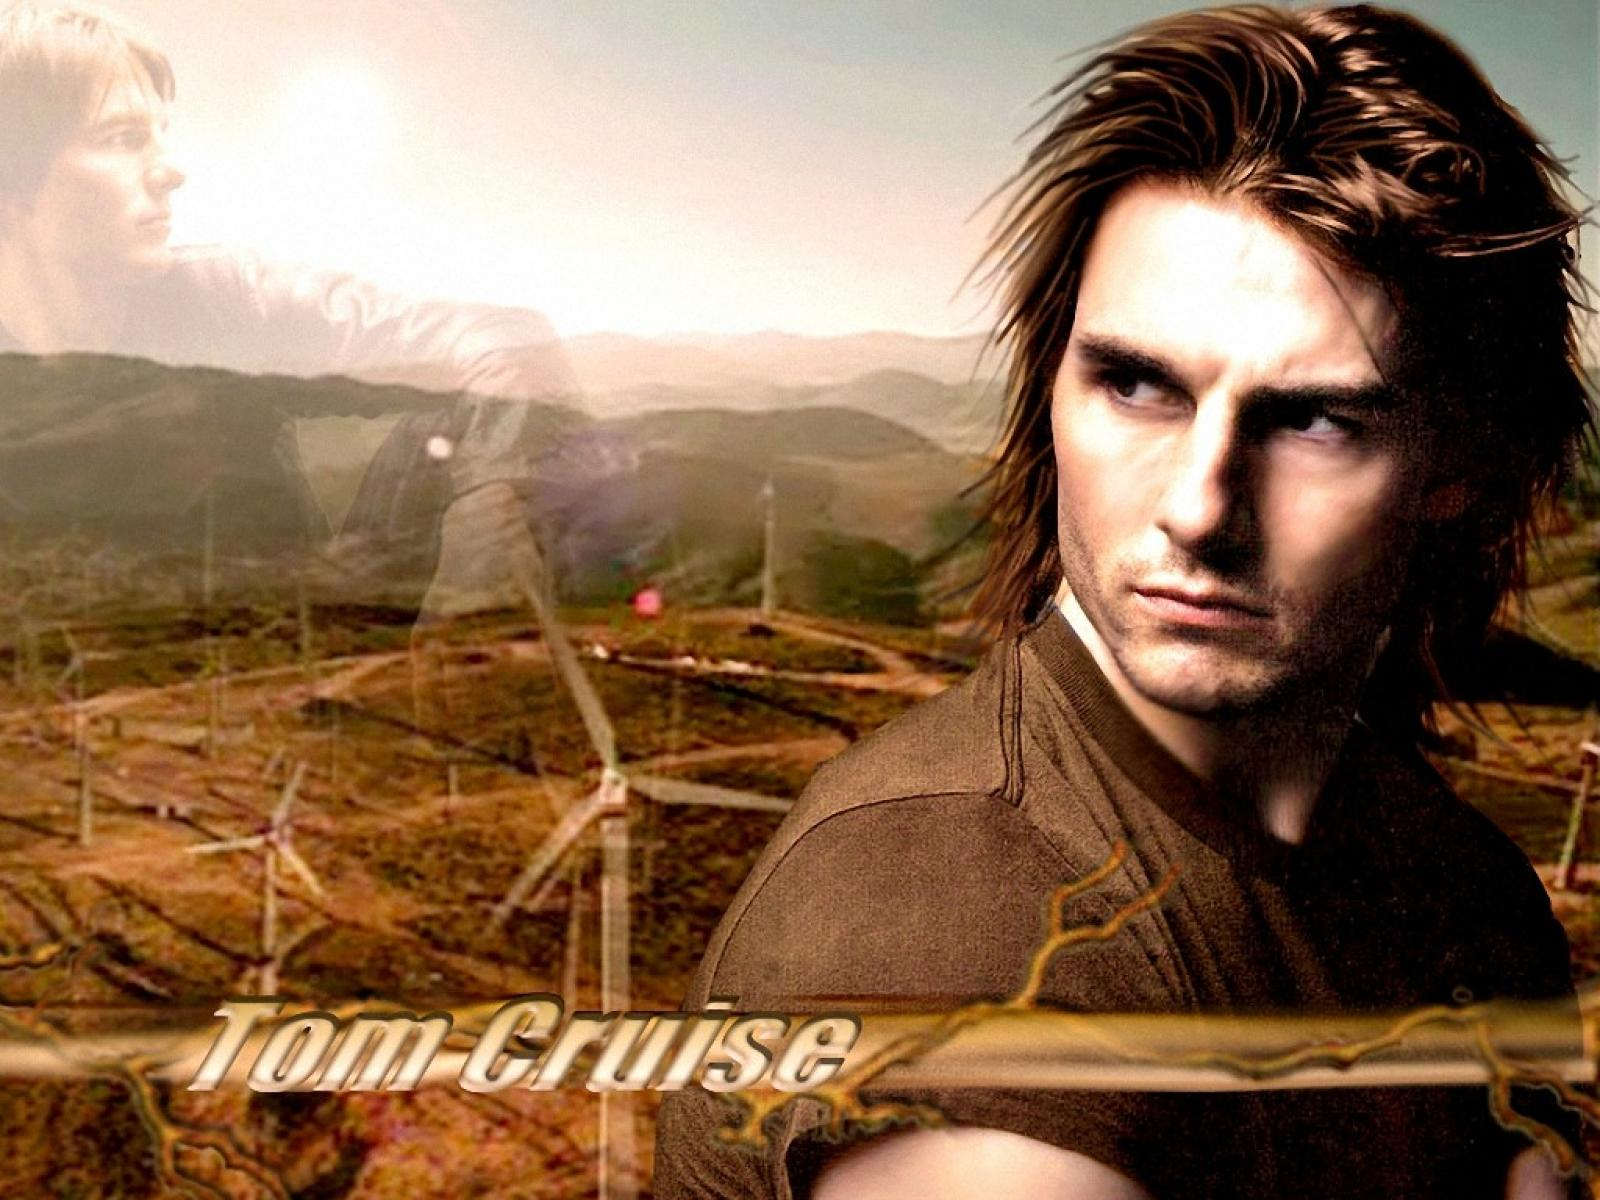 Tom Cruise 1600x1200 Wallpapers 1600x1200 Wallpapers 1600x1200